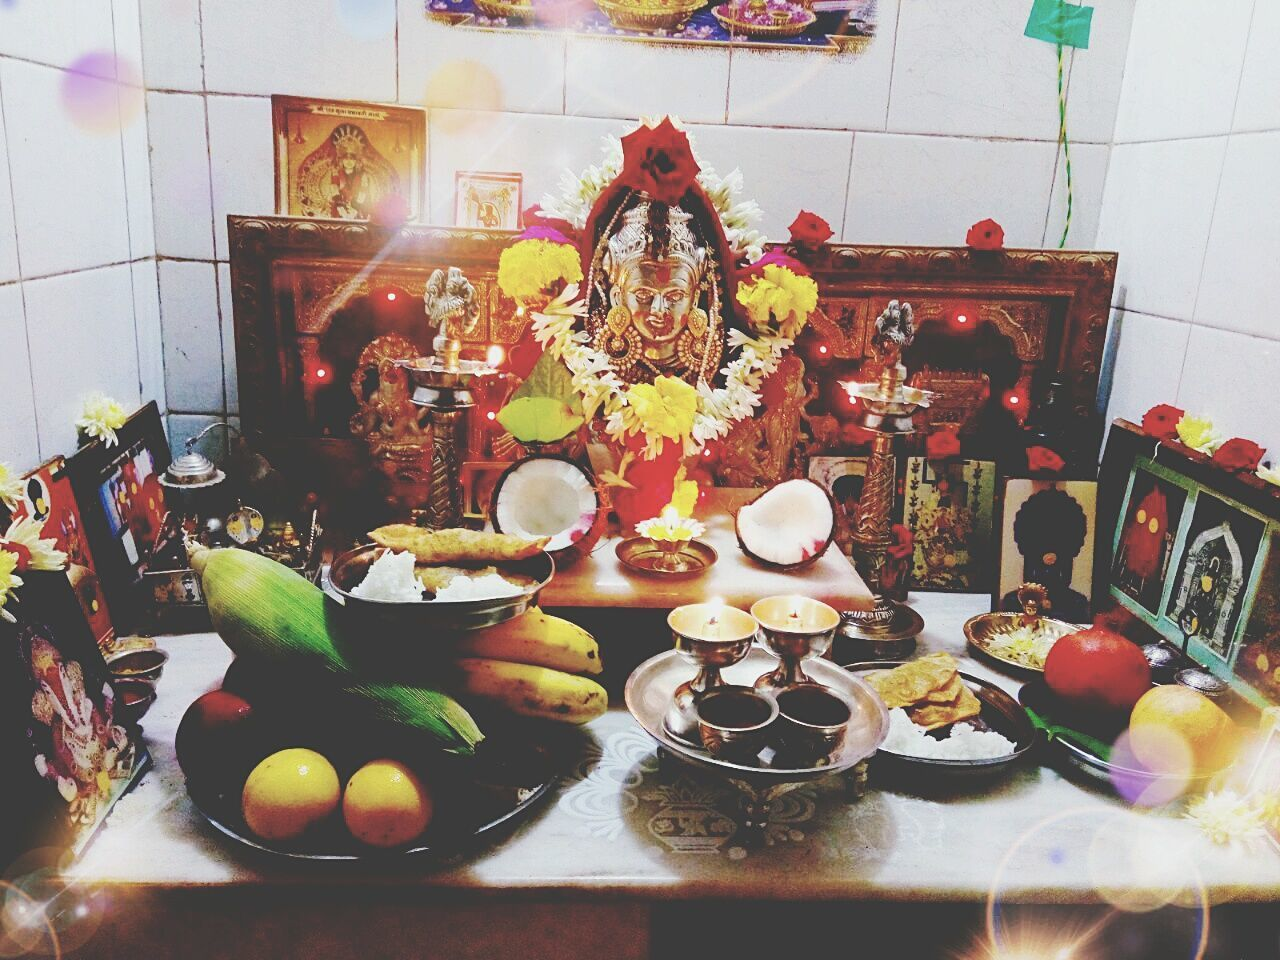 indoors, plate, food and drink, food, table, no people, fruit, spirituality, statue, freshness, healthy eating, ready-to-eat, day